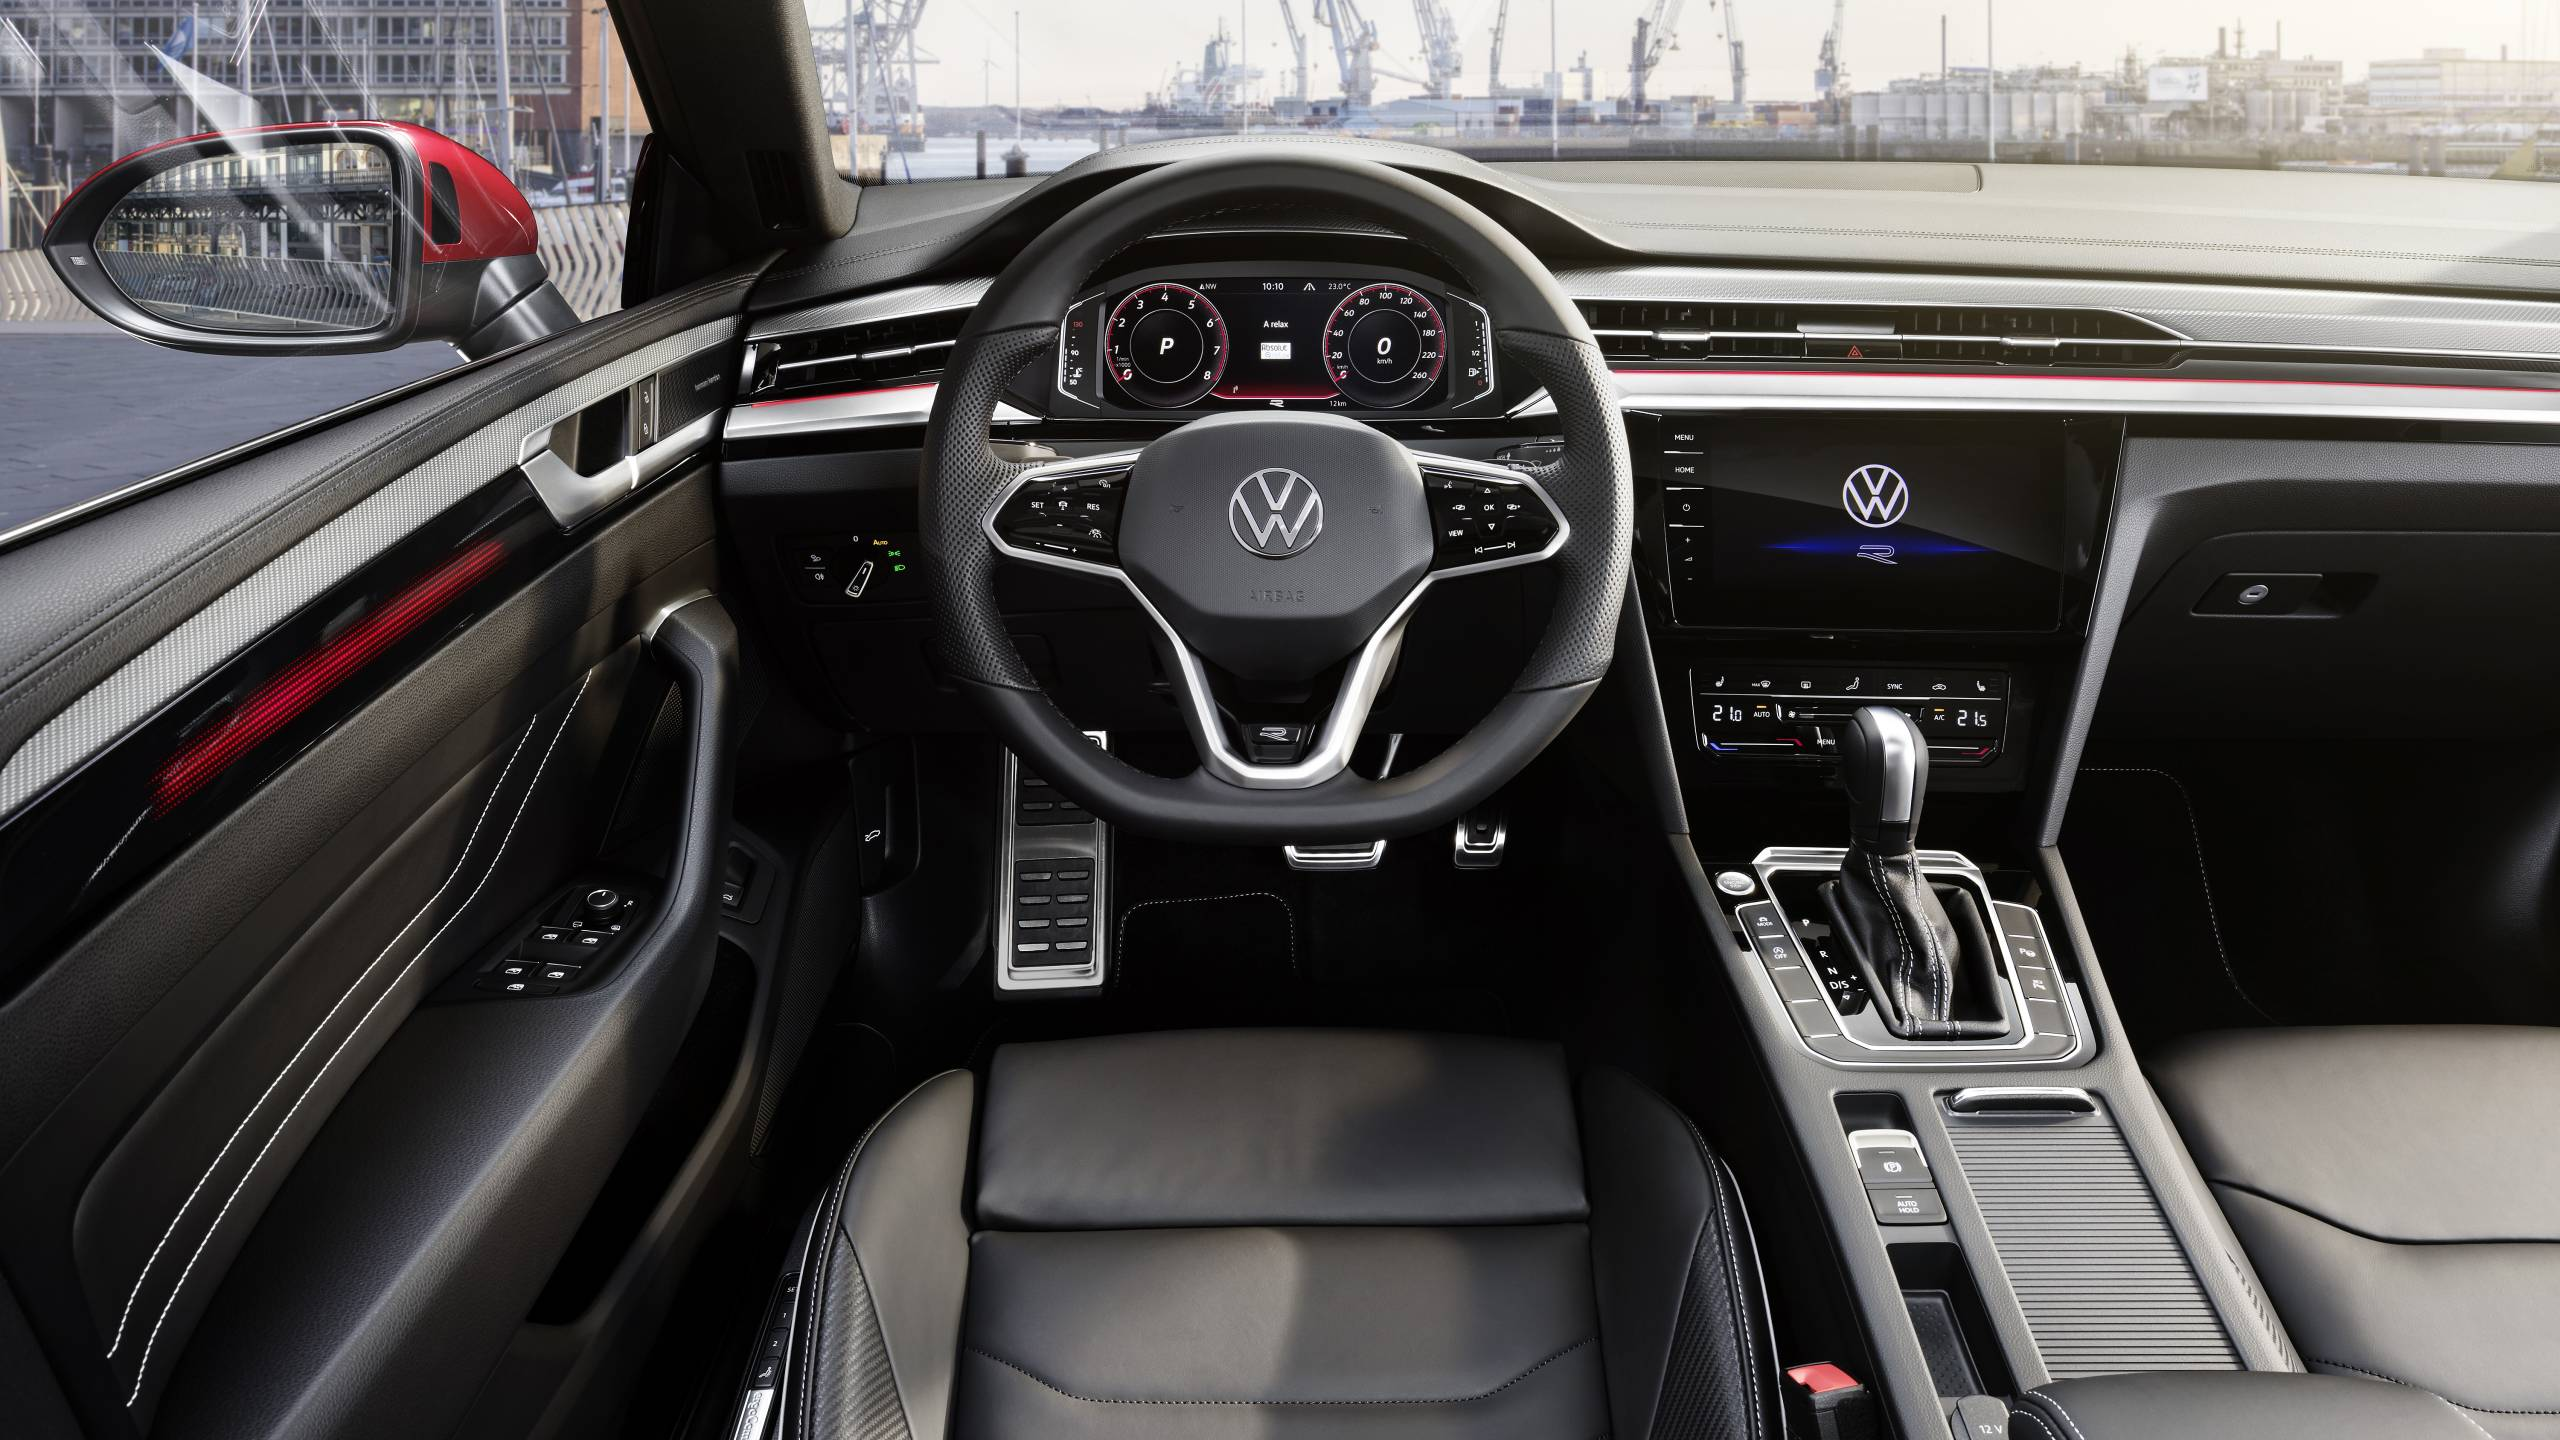 2021 Volkswagen Arteon Gets A Facelift And Refreshed Interior Slashgear